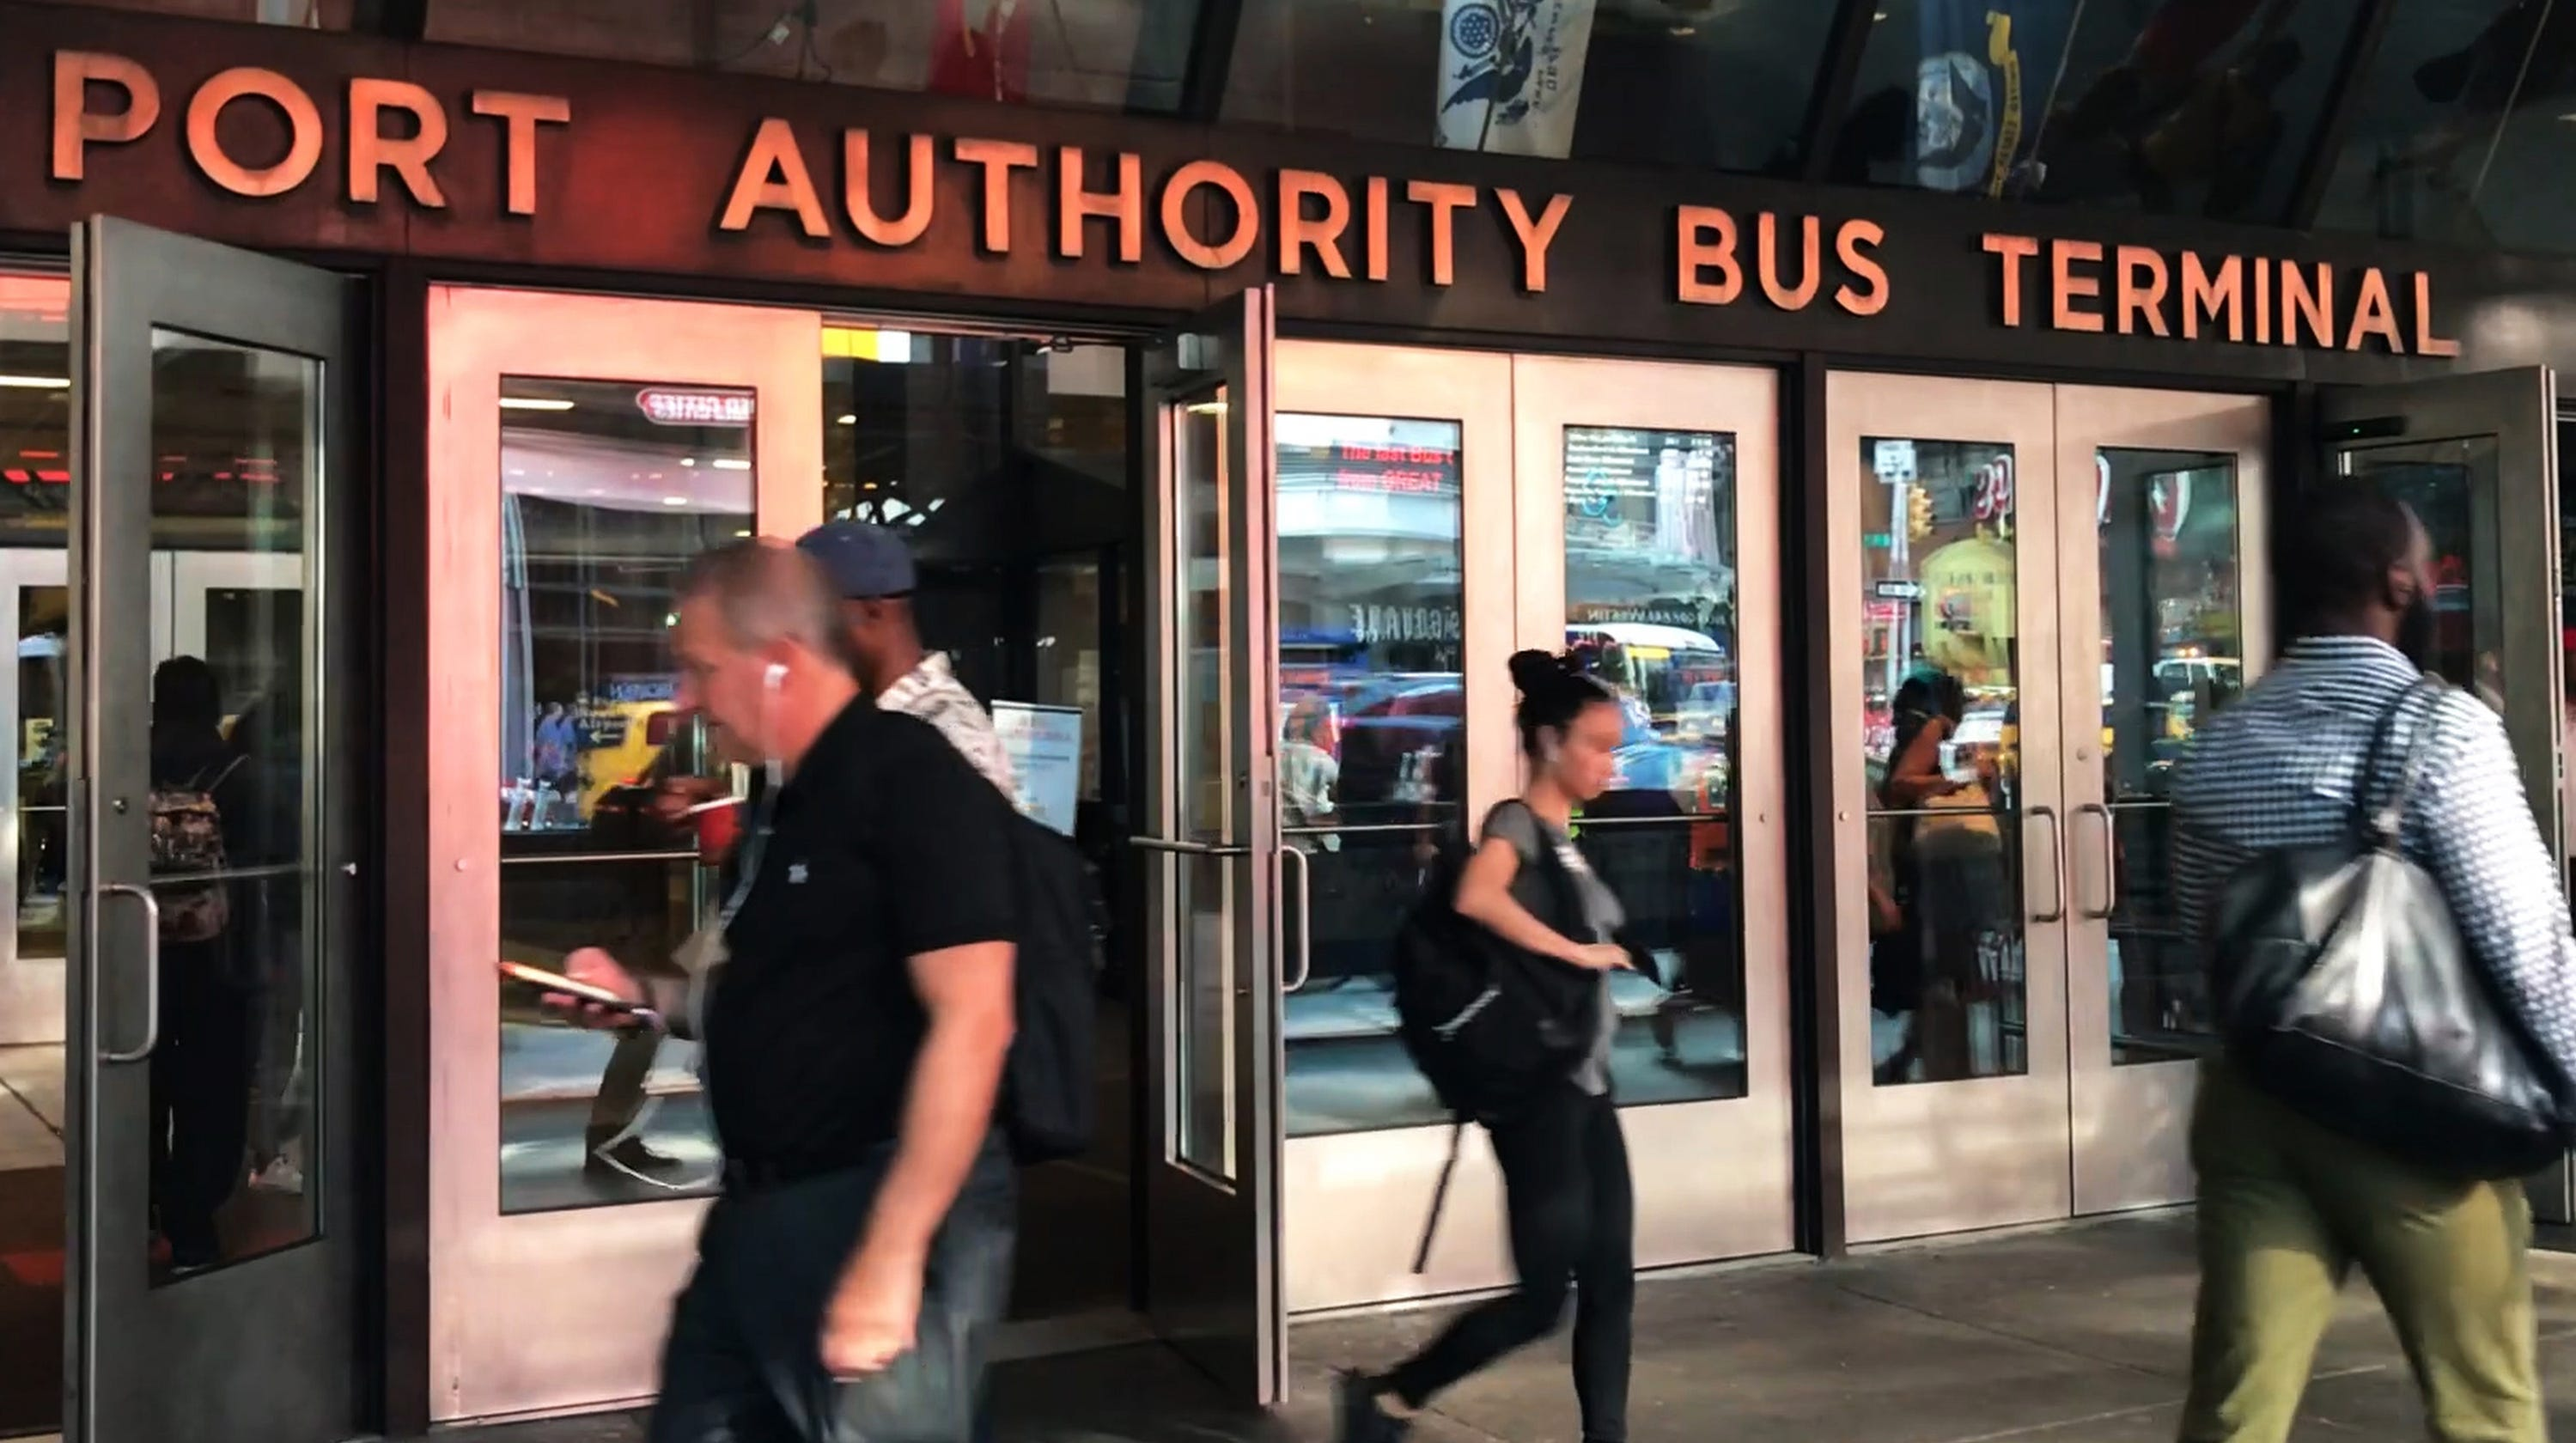 Port Authority bus terminal: Service resumes after Union